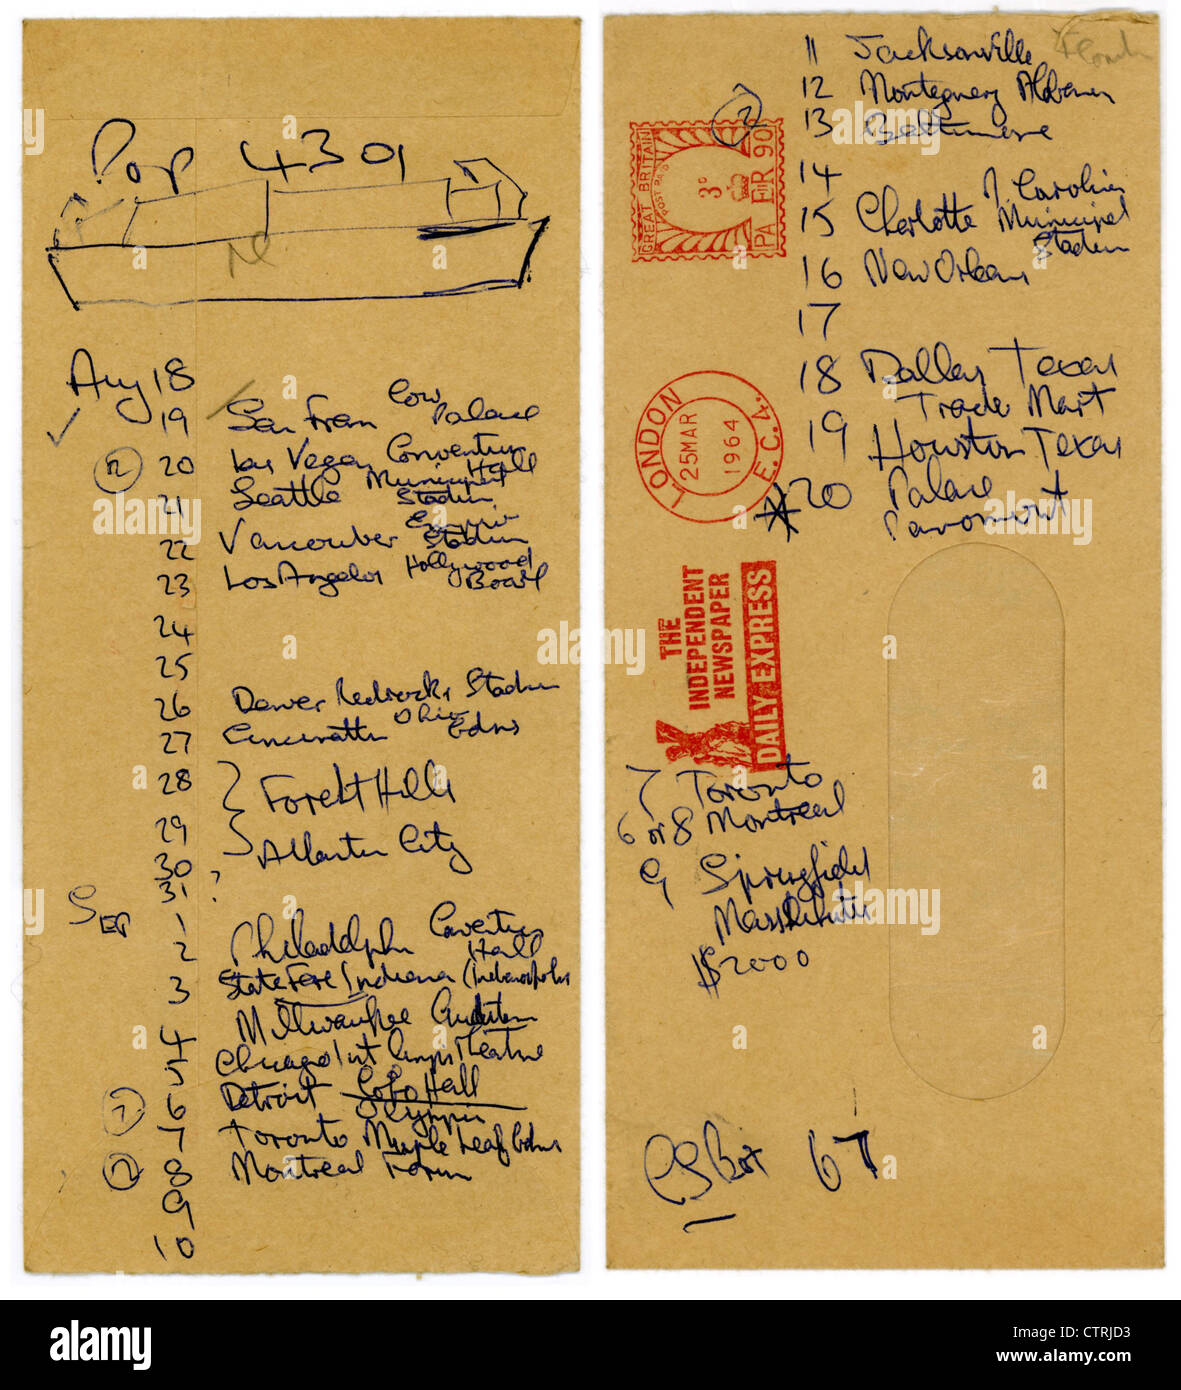 001015 - Brian Epstein's Handwritten Beatles Itinerary for August and September 1964 - Stock Image